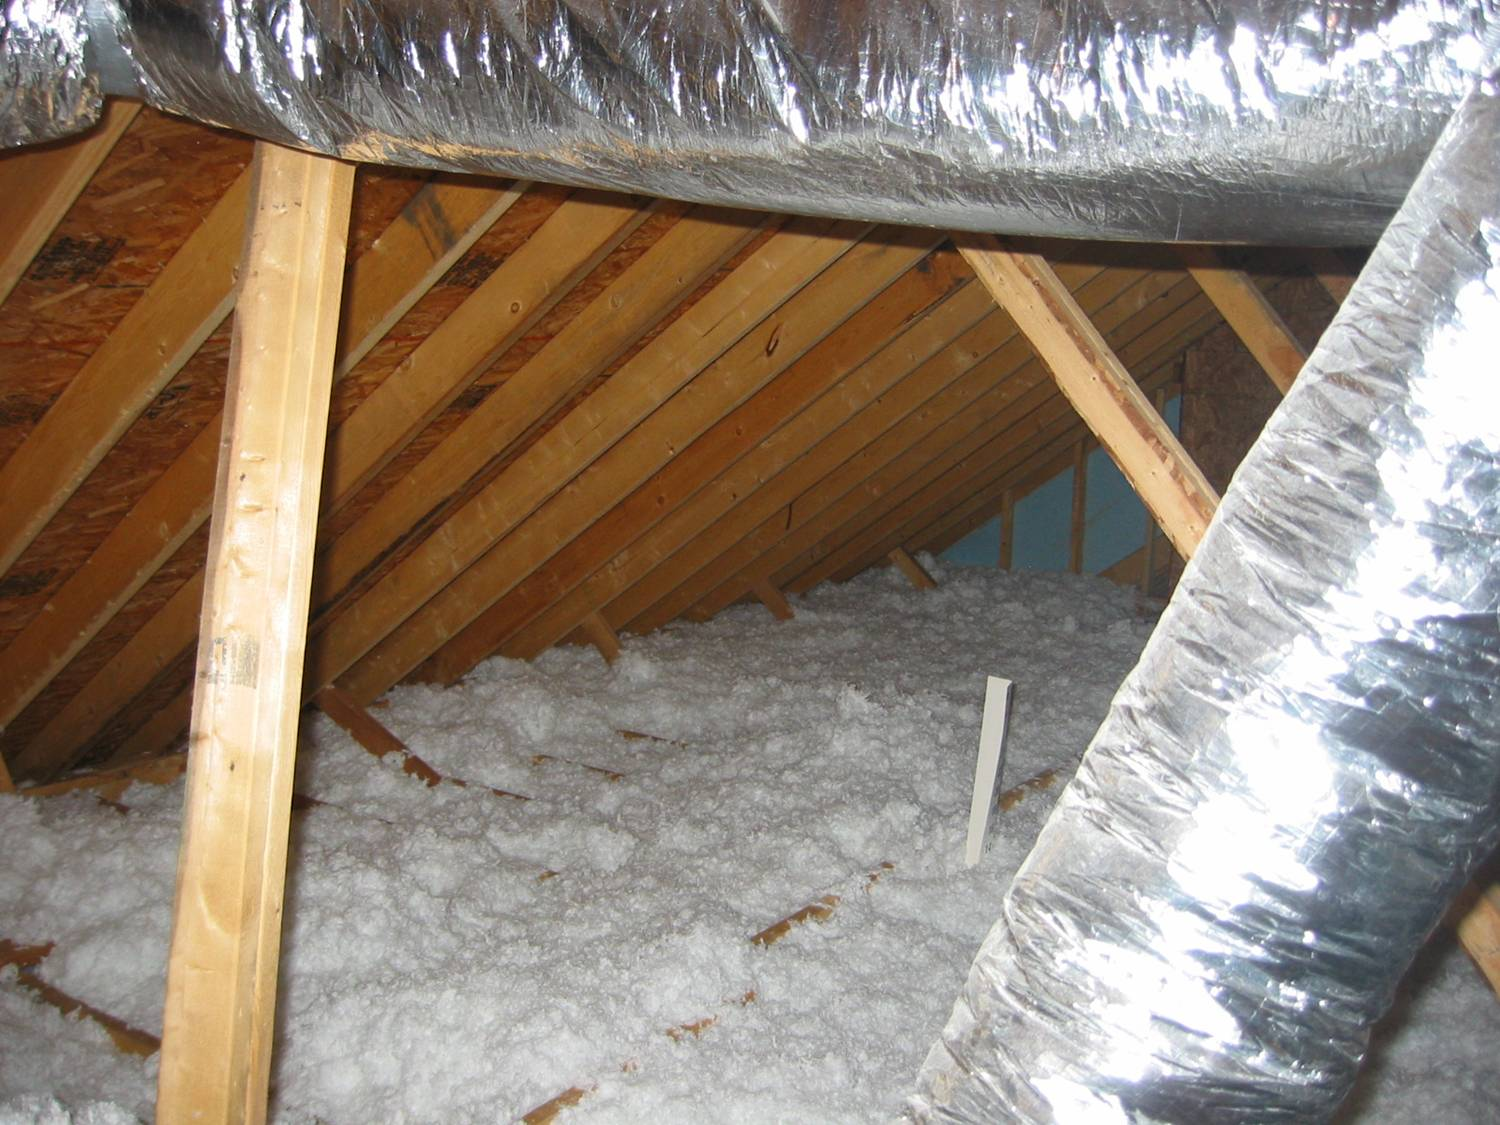 Figure 7.2. Blown Attic Insulation